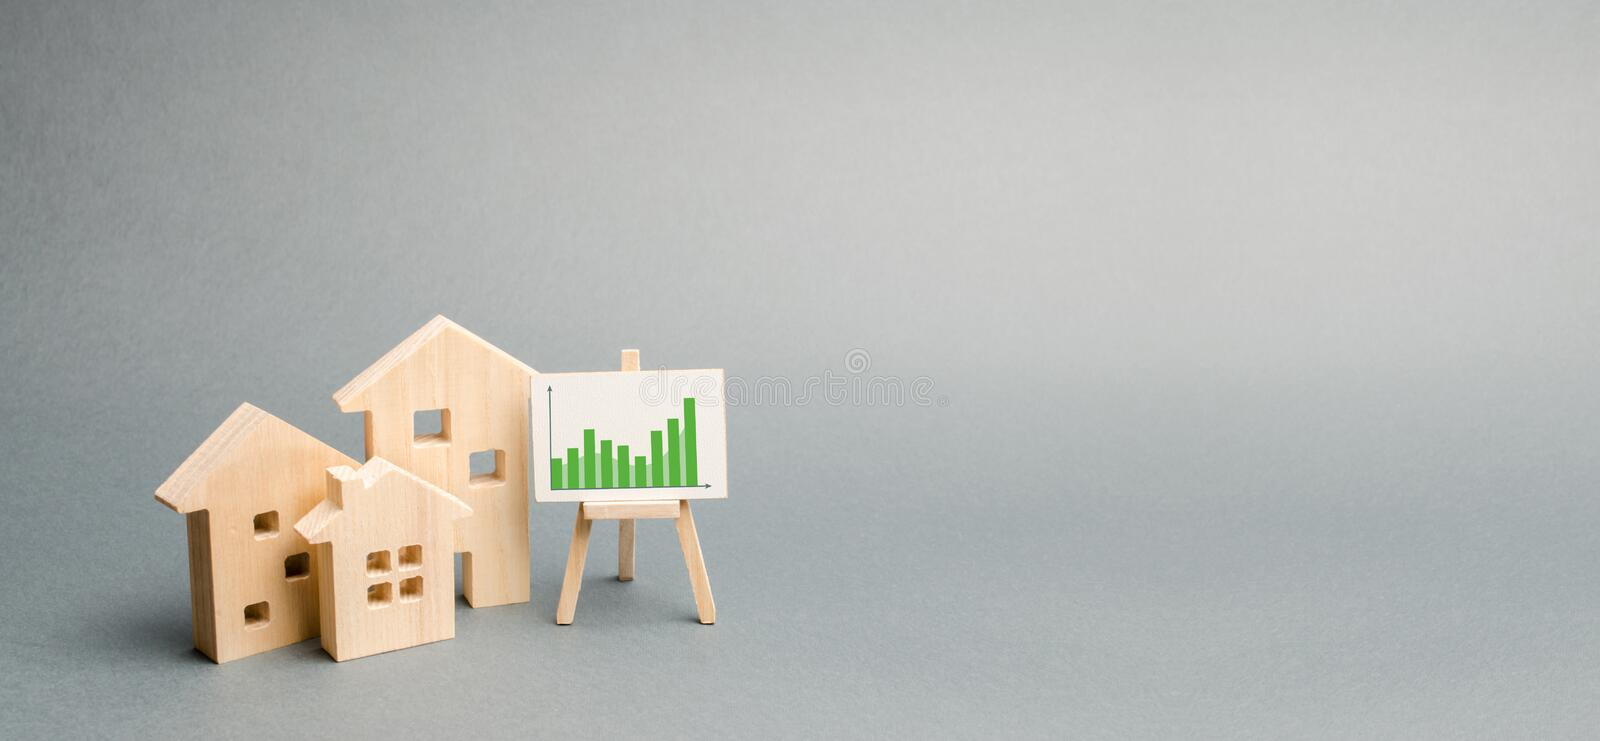 Wooden houses with a stand of graphics and information. Growing demand for housing and real estate. growth of the city royalty free stock photos